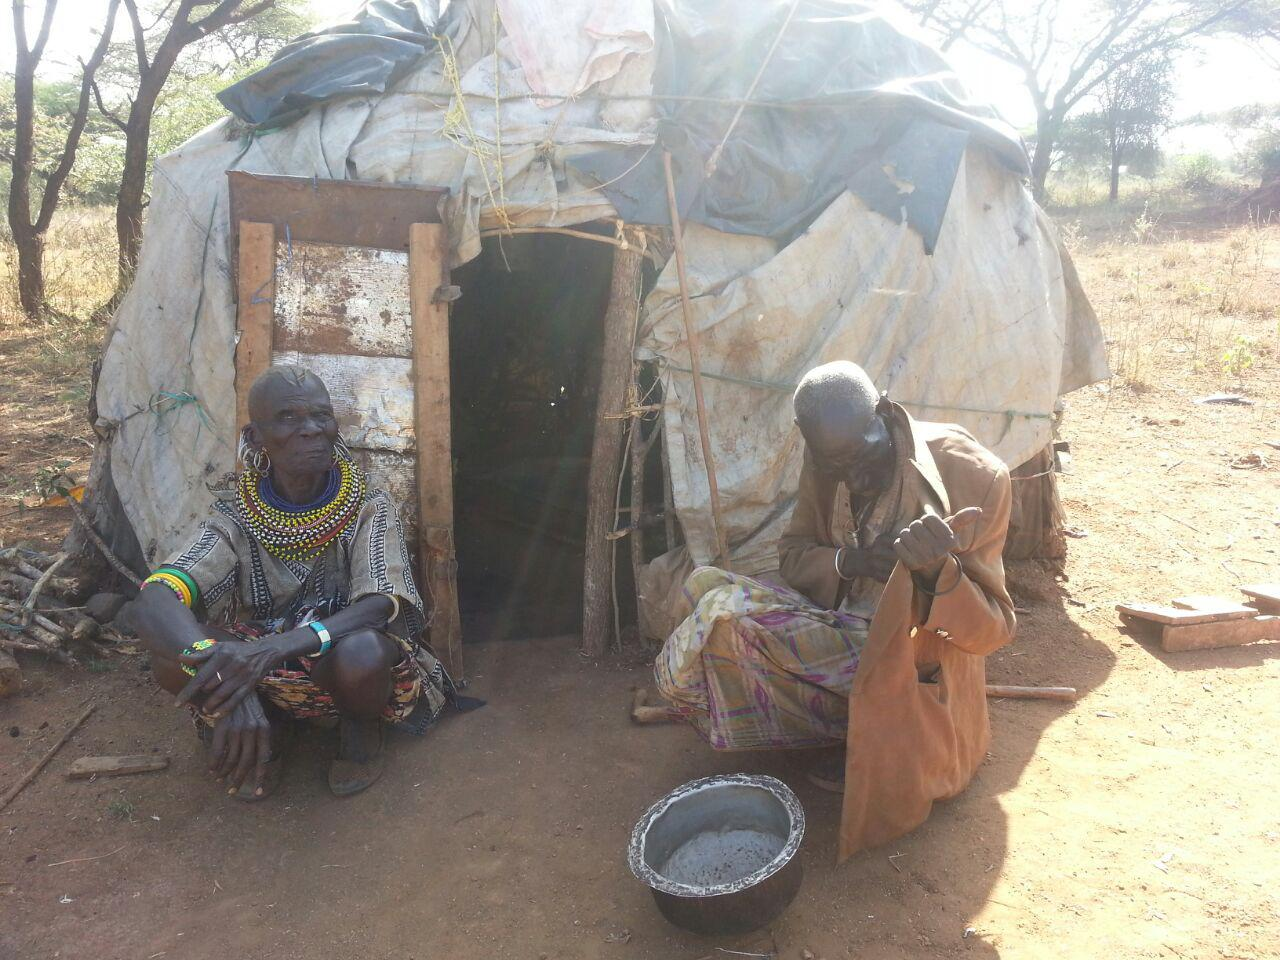 Husband and wife villagers from Attir, the Crossing's adpoted village in Kenya. Read their story in the newsletter!